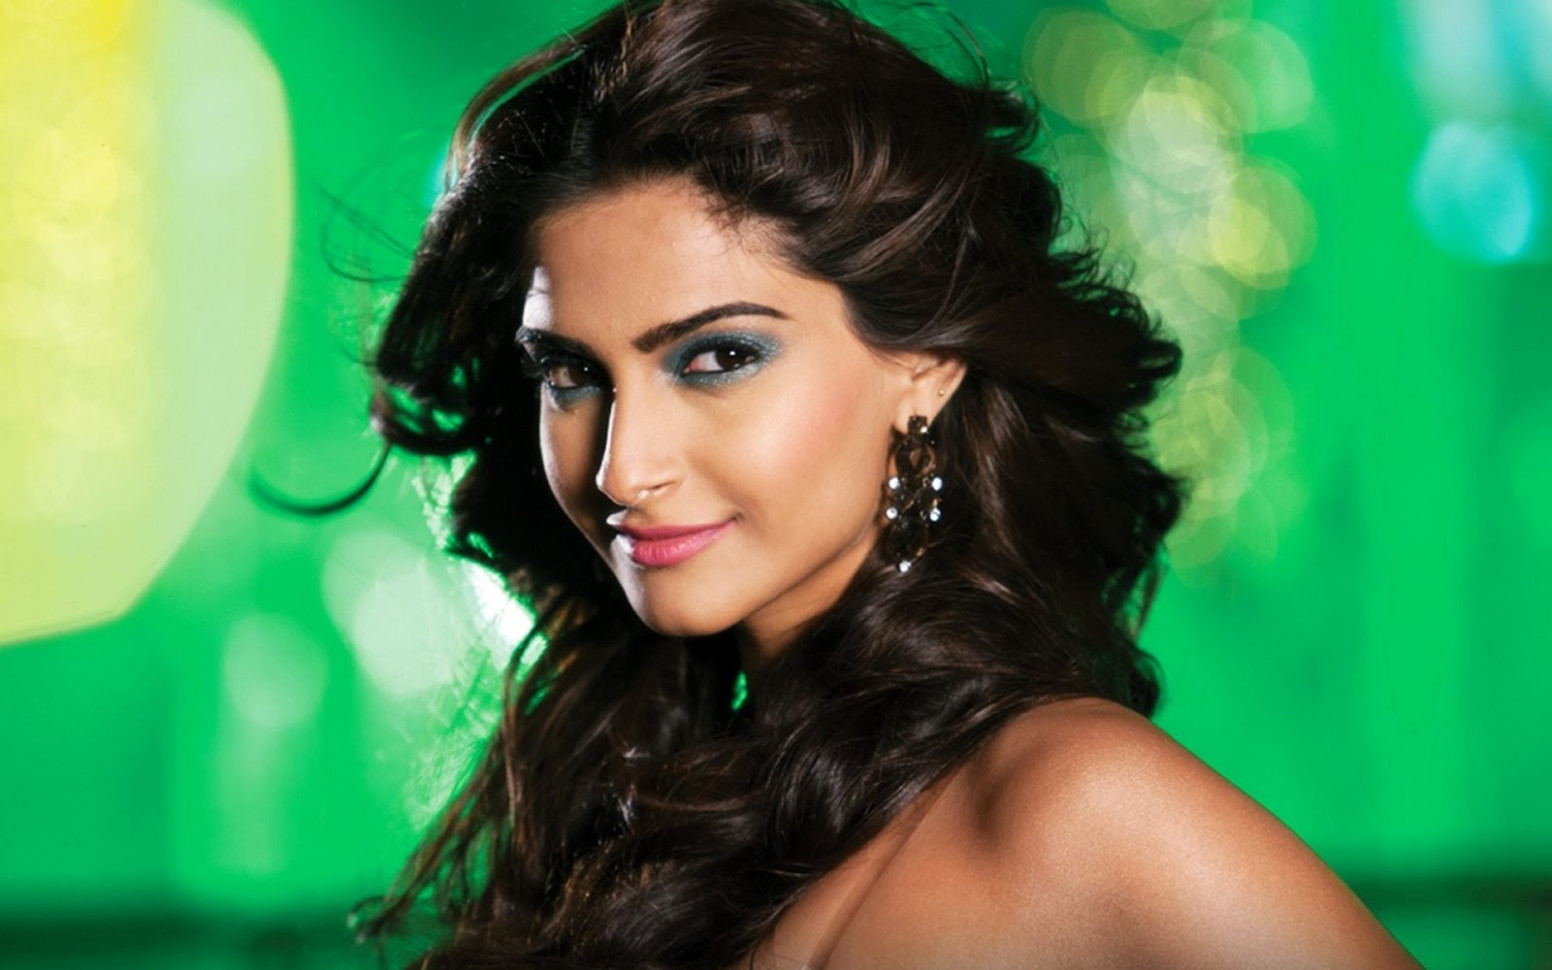 Upcoming Movies Of Sonam Kapoor 2017-2018 With Release Dates